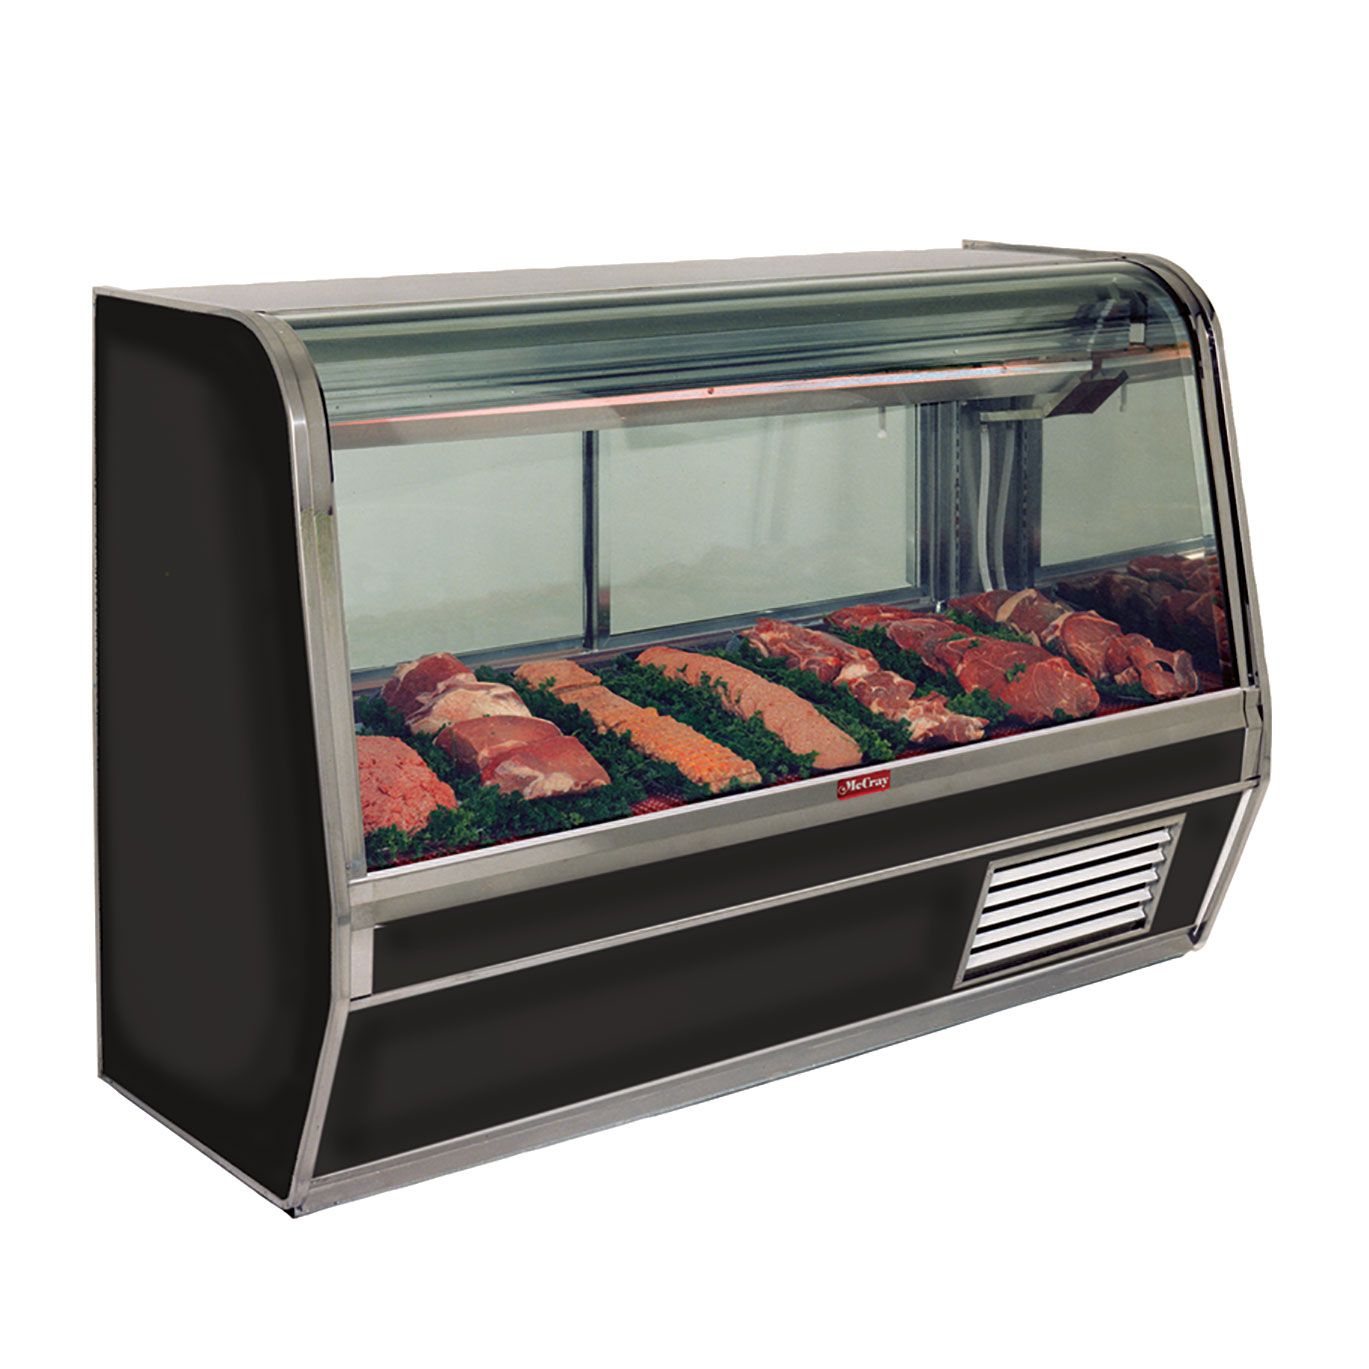 Howard-McCray SC-CMS32E-8C-BE-LED display case, red meat deli